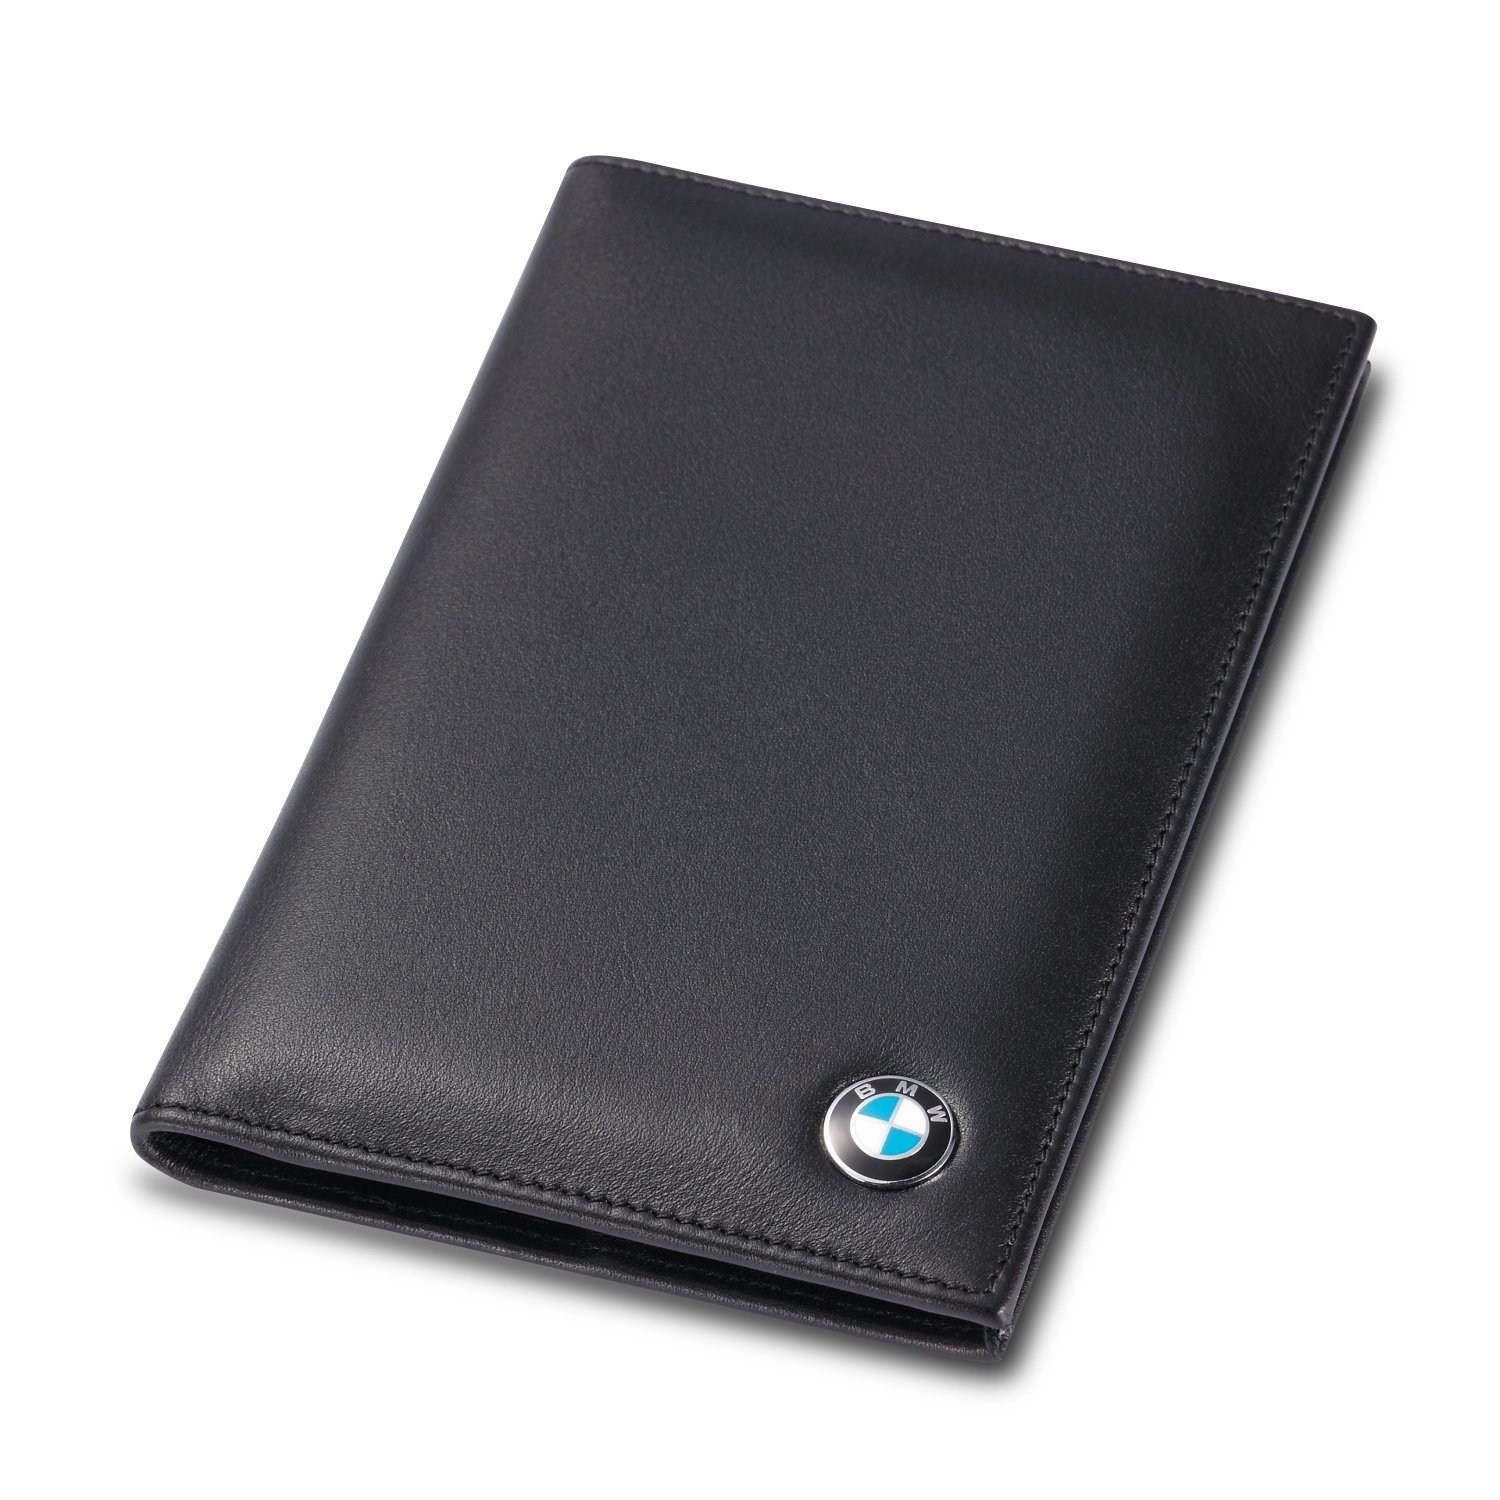 BMW Bifold Standard Passport Cover - Genuine Leather by Leather Wallets